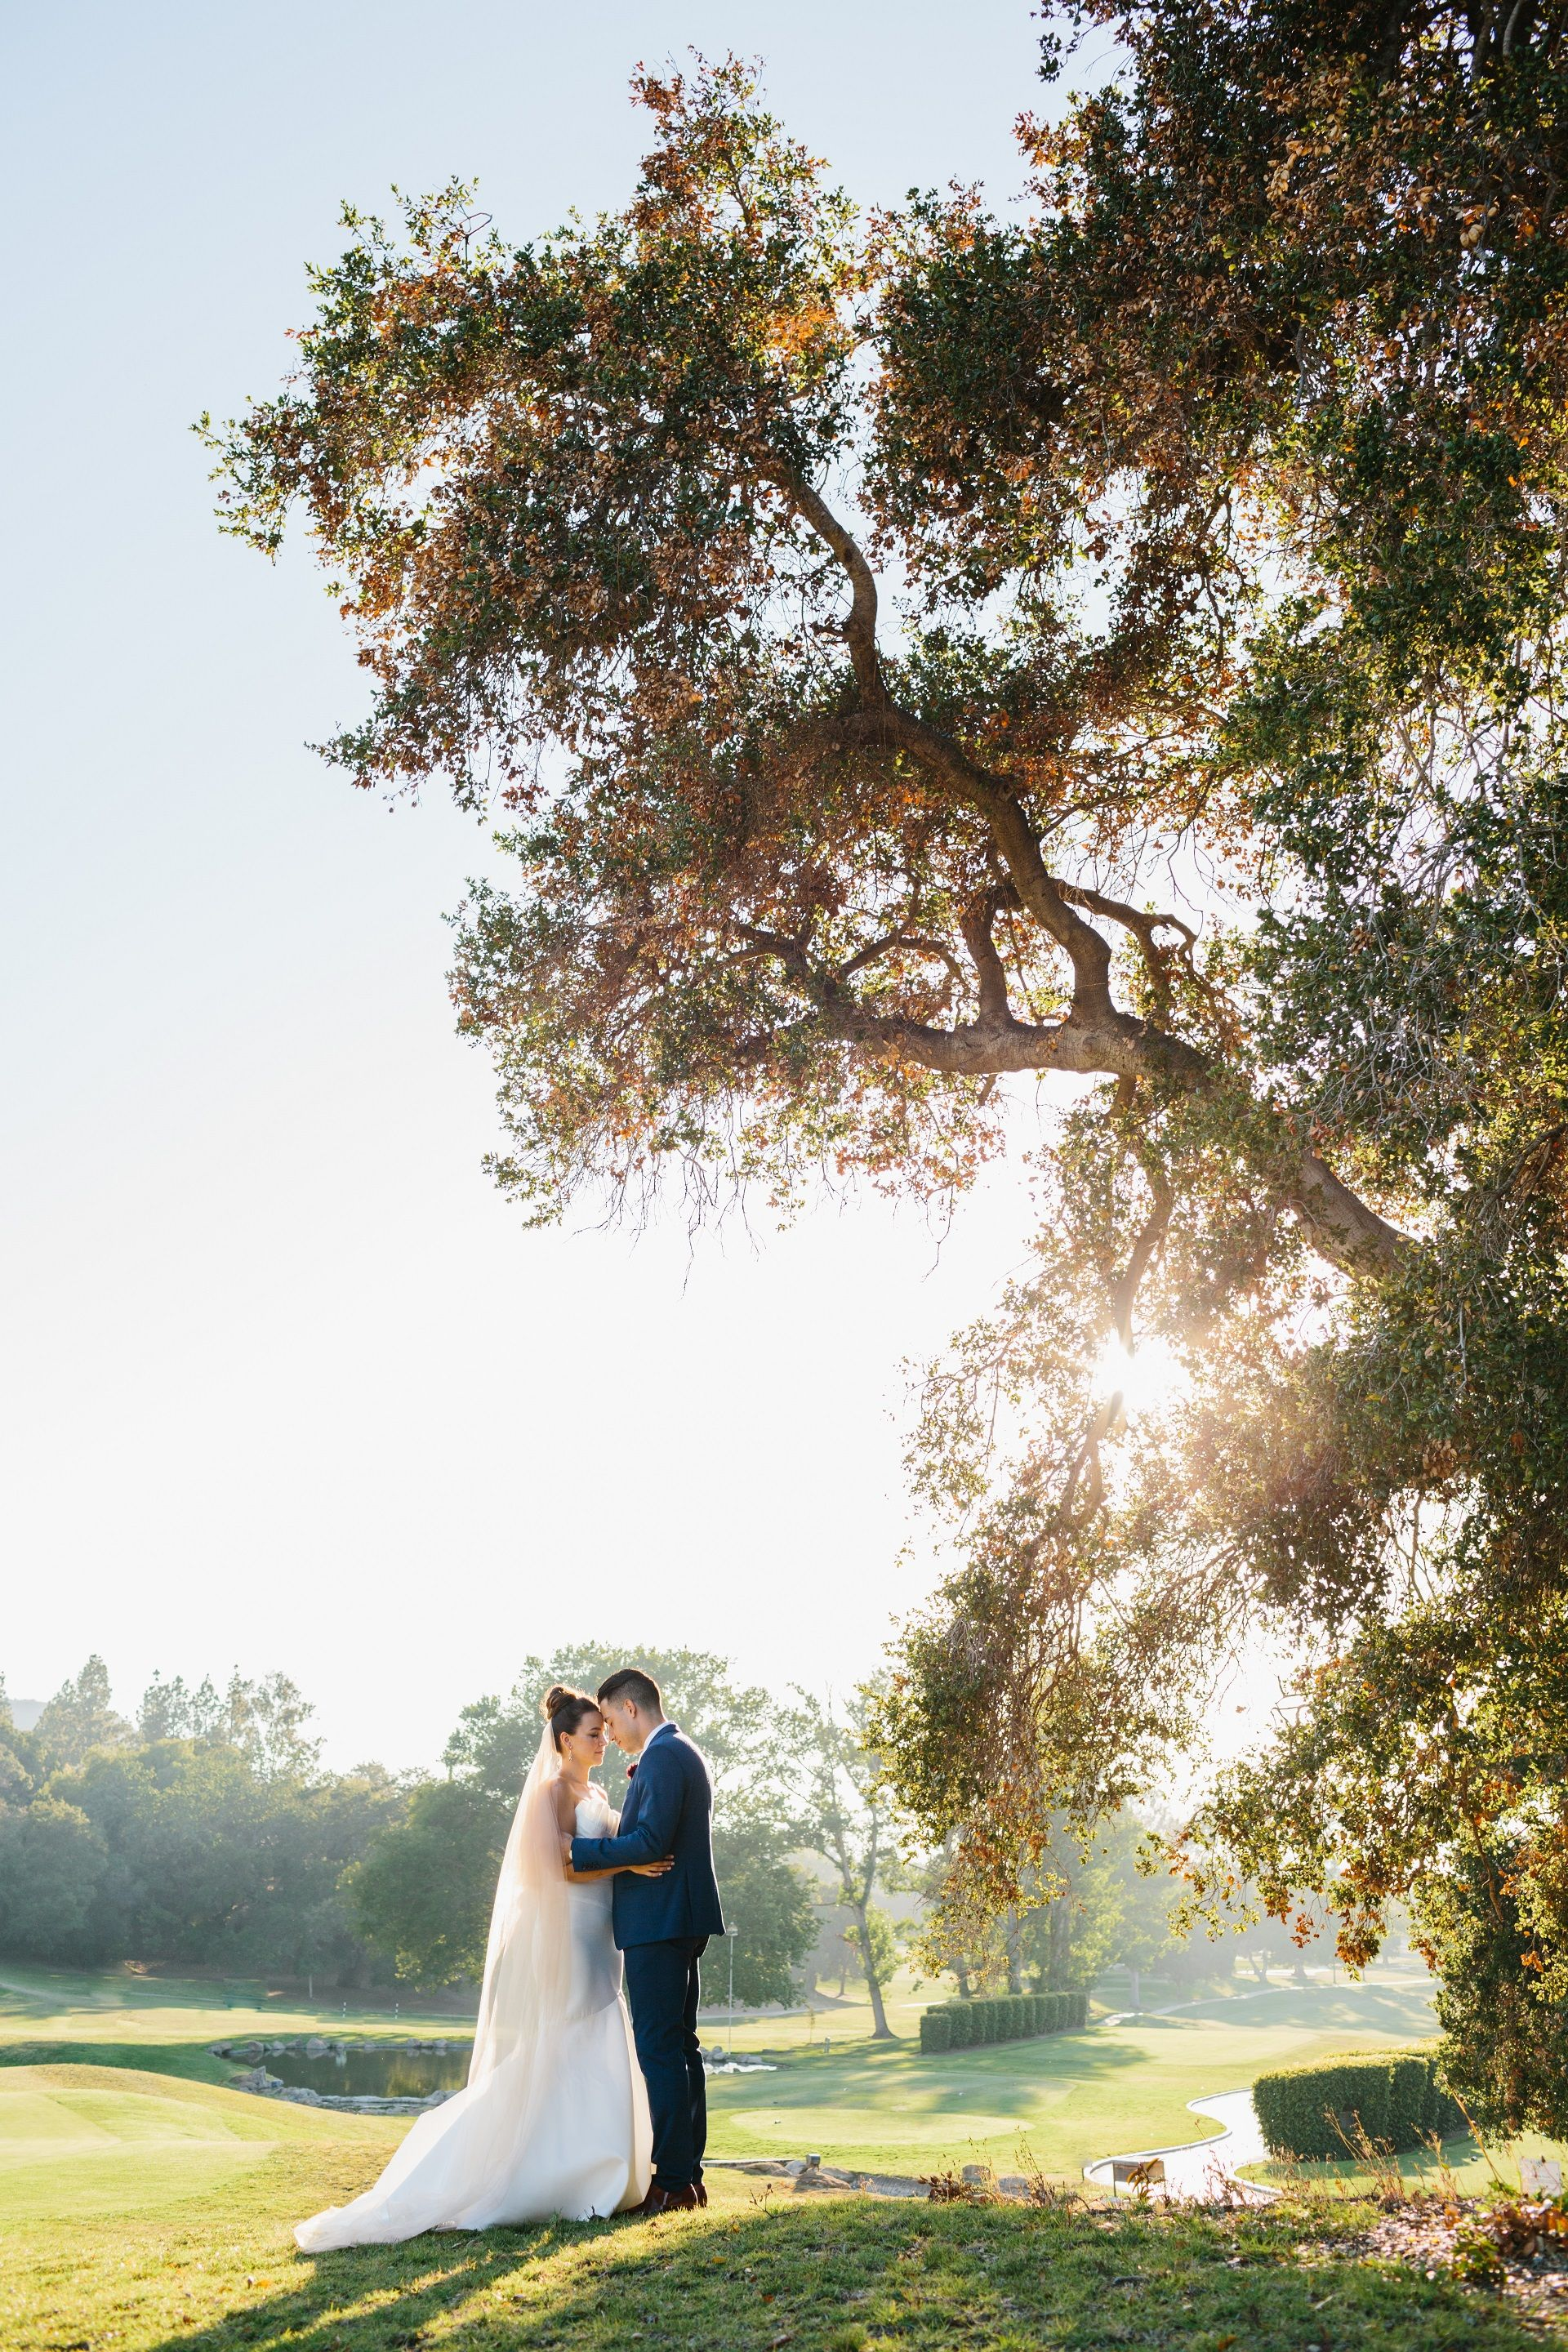 Beautiful golf course shot at Los Robles Greens Golf Course in Thousand Oaks CA #pieshoppe #pieshoppephotography #enchanted #beauty  #thousandoakswedding #losrobles #wedding #bridenandgroom #wedding photography #golfcoursewedding #golfwedding #thegardens #swoon #thedress #southerncalifornia #socalwedding #ido #theknot #summerwedding #spring wedding #weddinginspiration #instabride #weddingreception #event #weddingdetails #weddingplanner #californiabride #lace